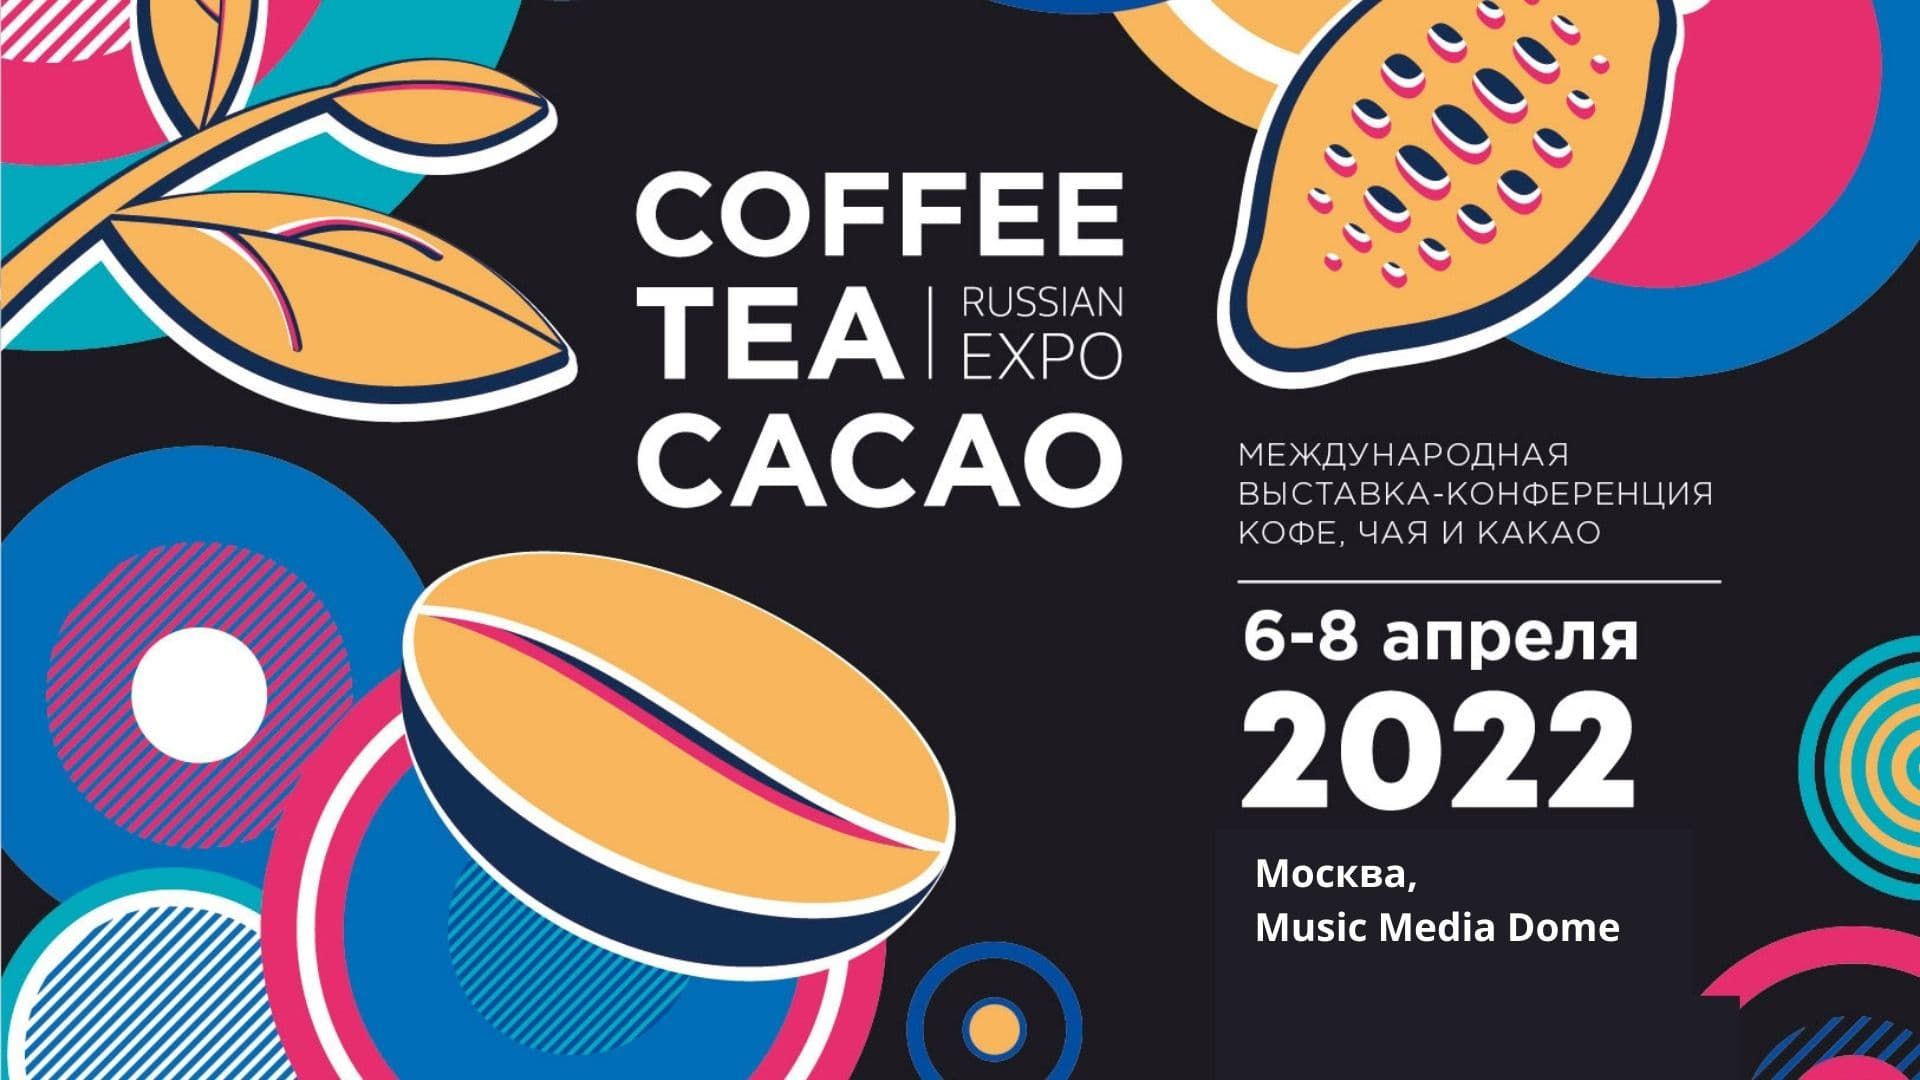 Coffee-Tea-Cacao-Russian-Expo-2022-email-header-image